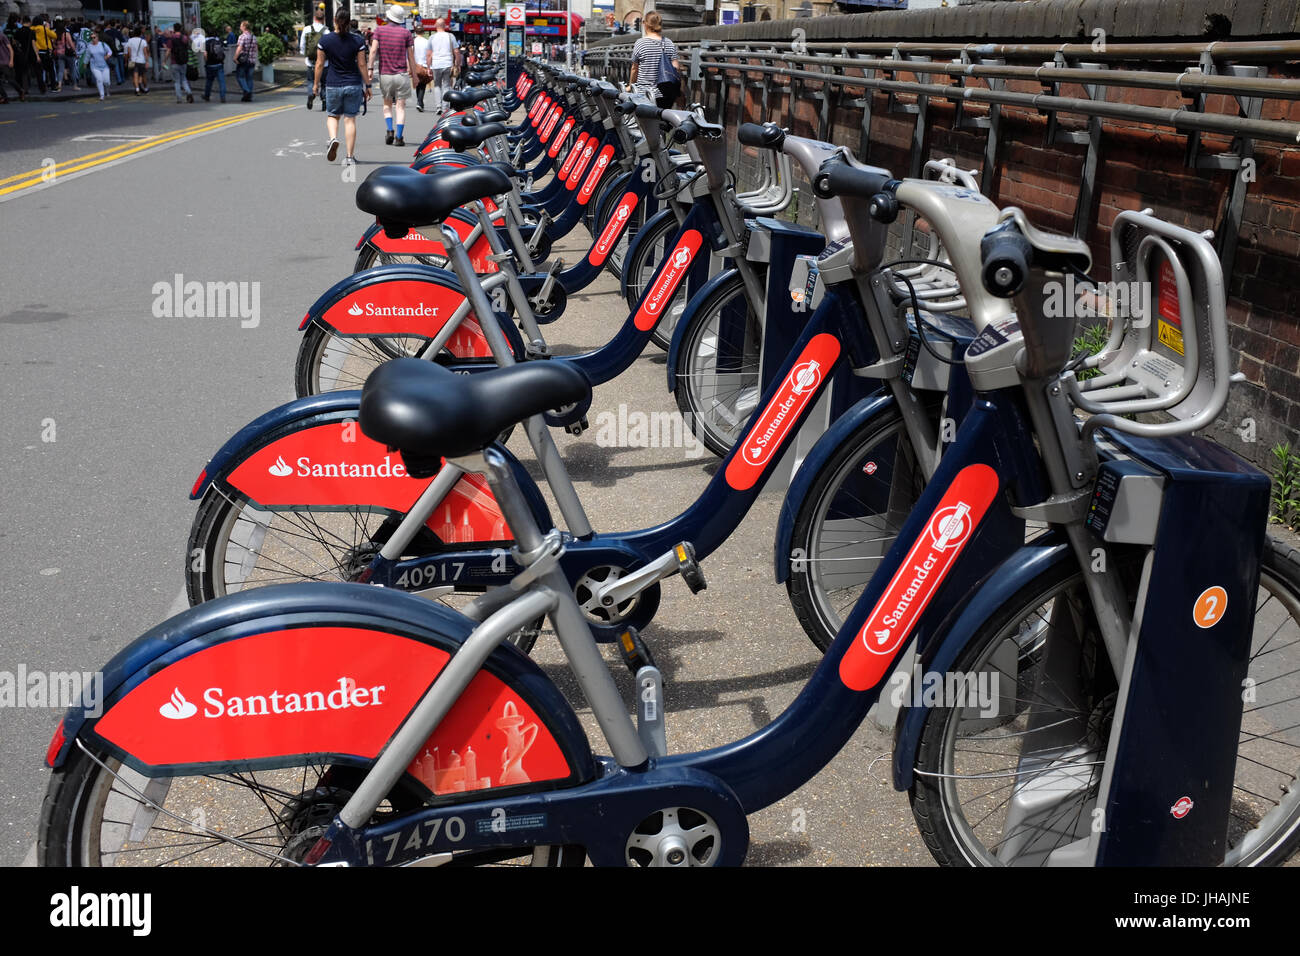 Santander Cycles outside Waterloo Station in London, England. - Stock Image